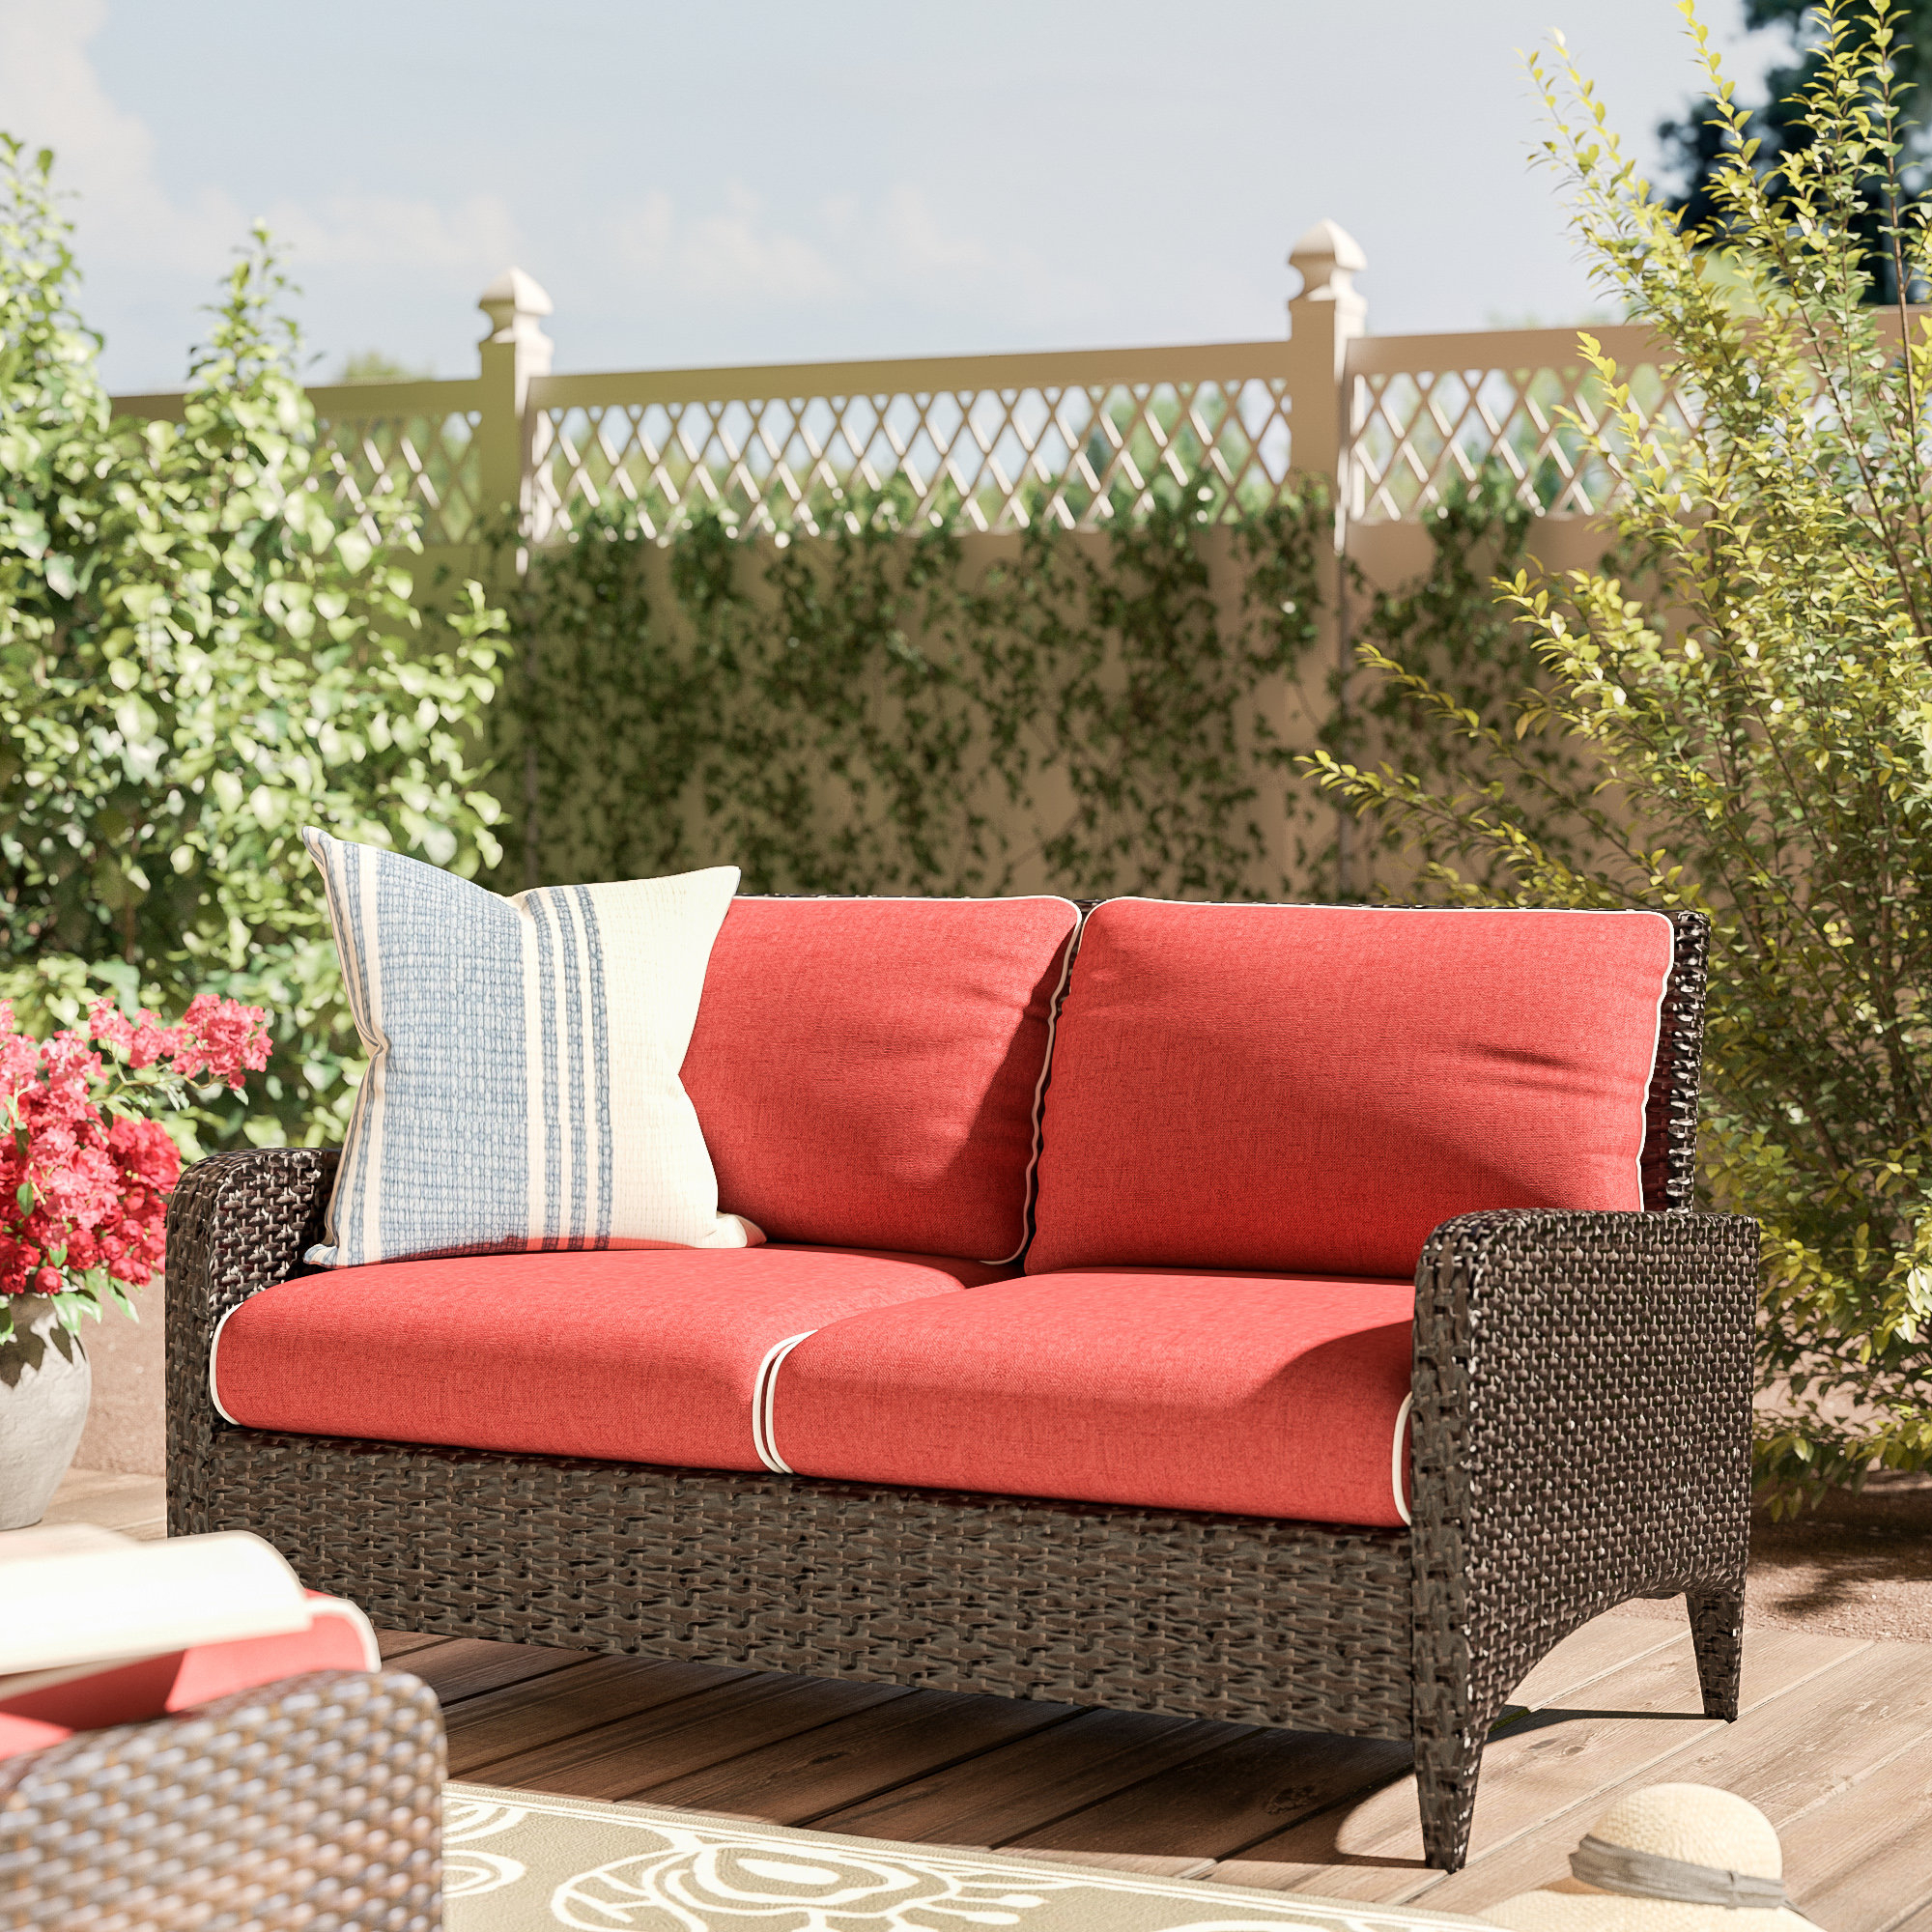 Loggins Loveseats With Cushions With Regard To Favorite Patio Loveseat With Ottoman (View 9 of 20)